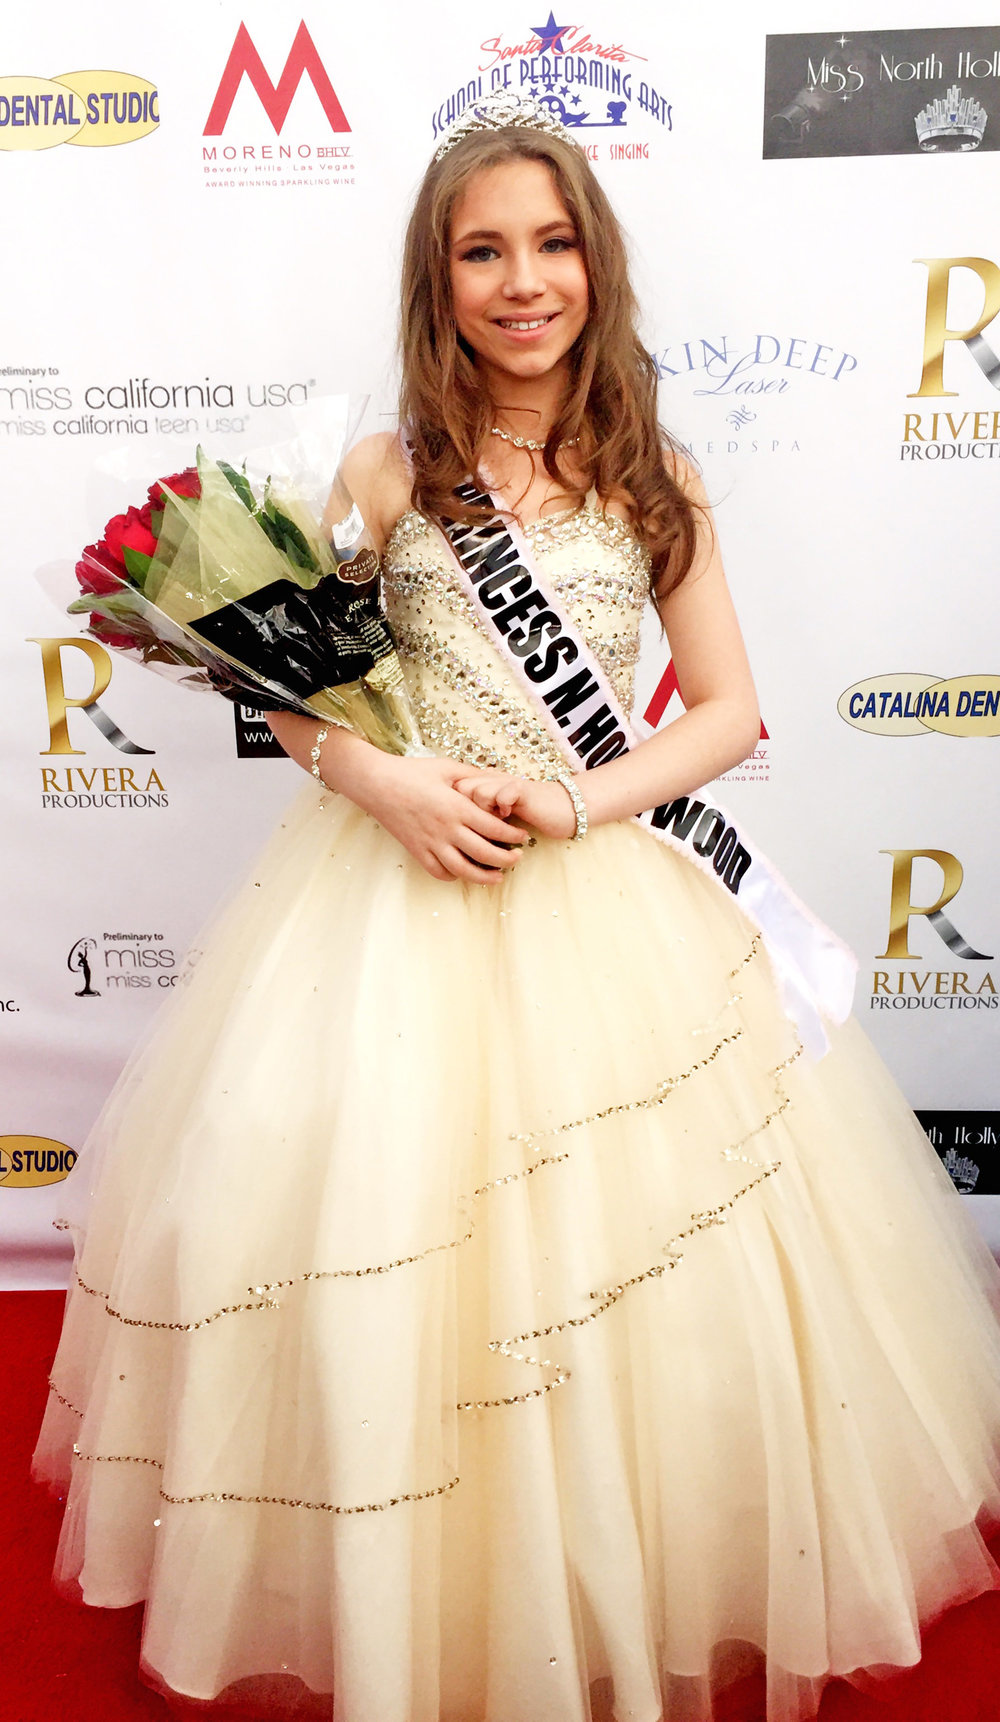 chiara first princess Miss North Hollywood.JPG